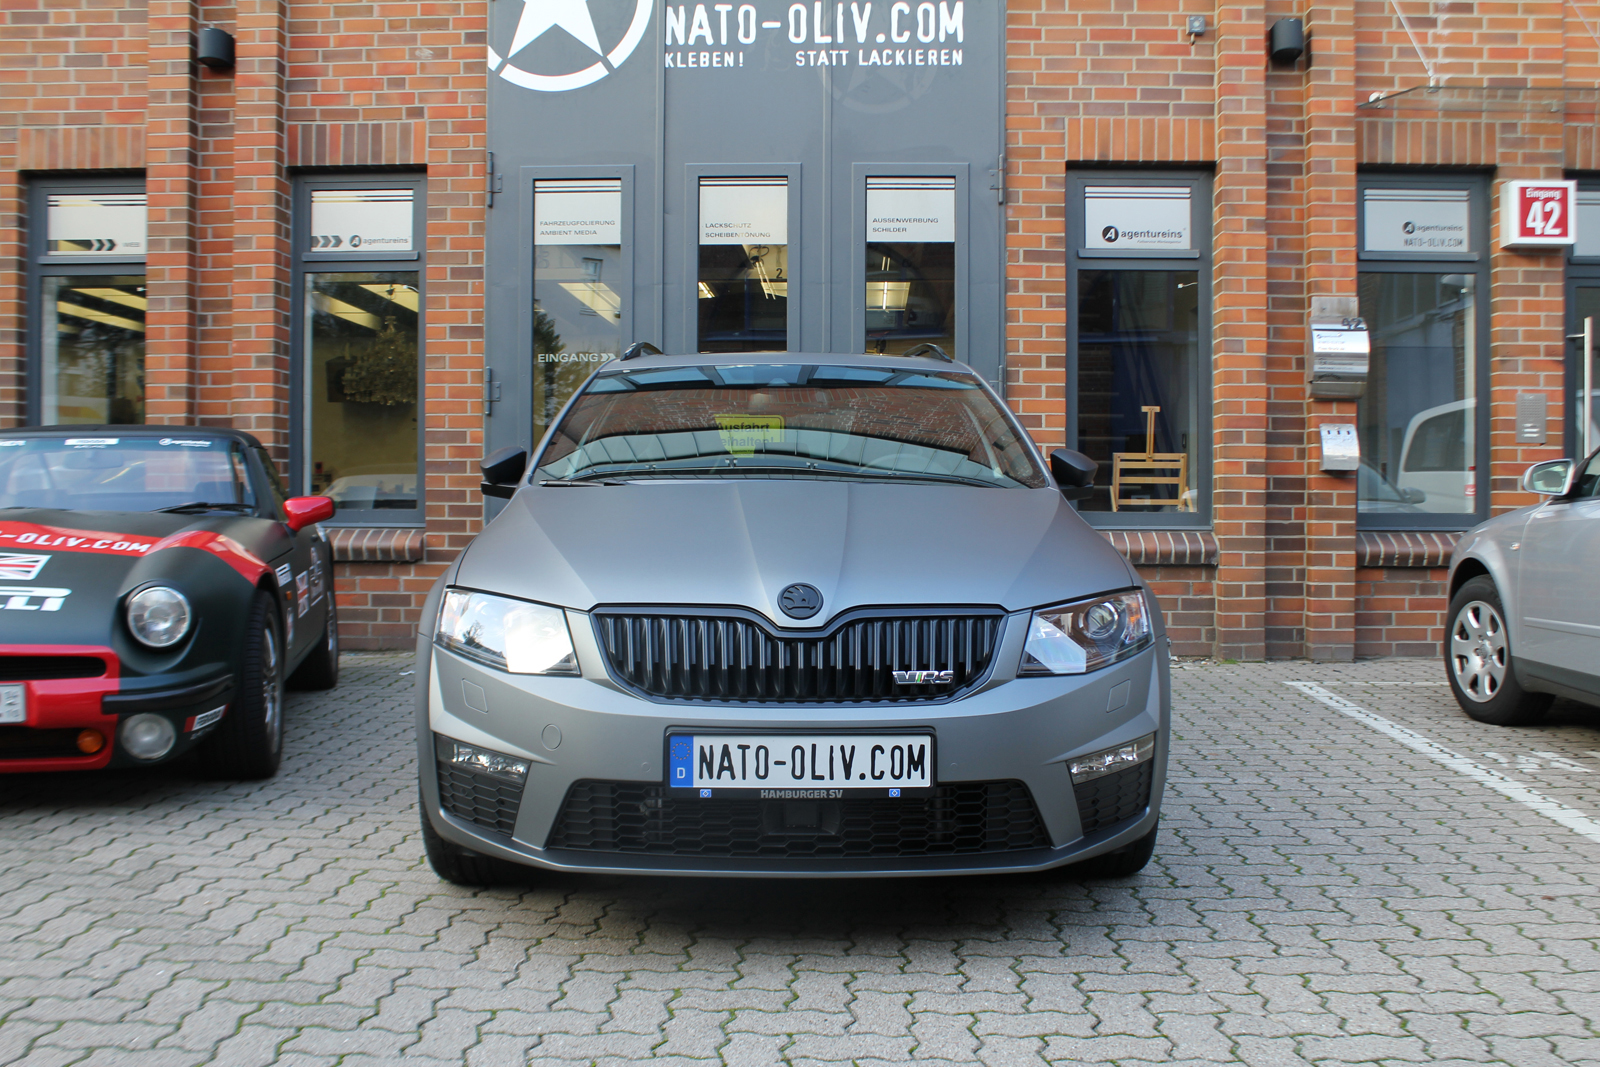 SKODA_COMBI_RS_FOLIERUNG_GUNMETAL_MATT_METALLIC_01